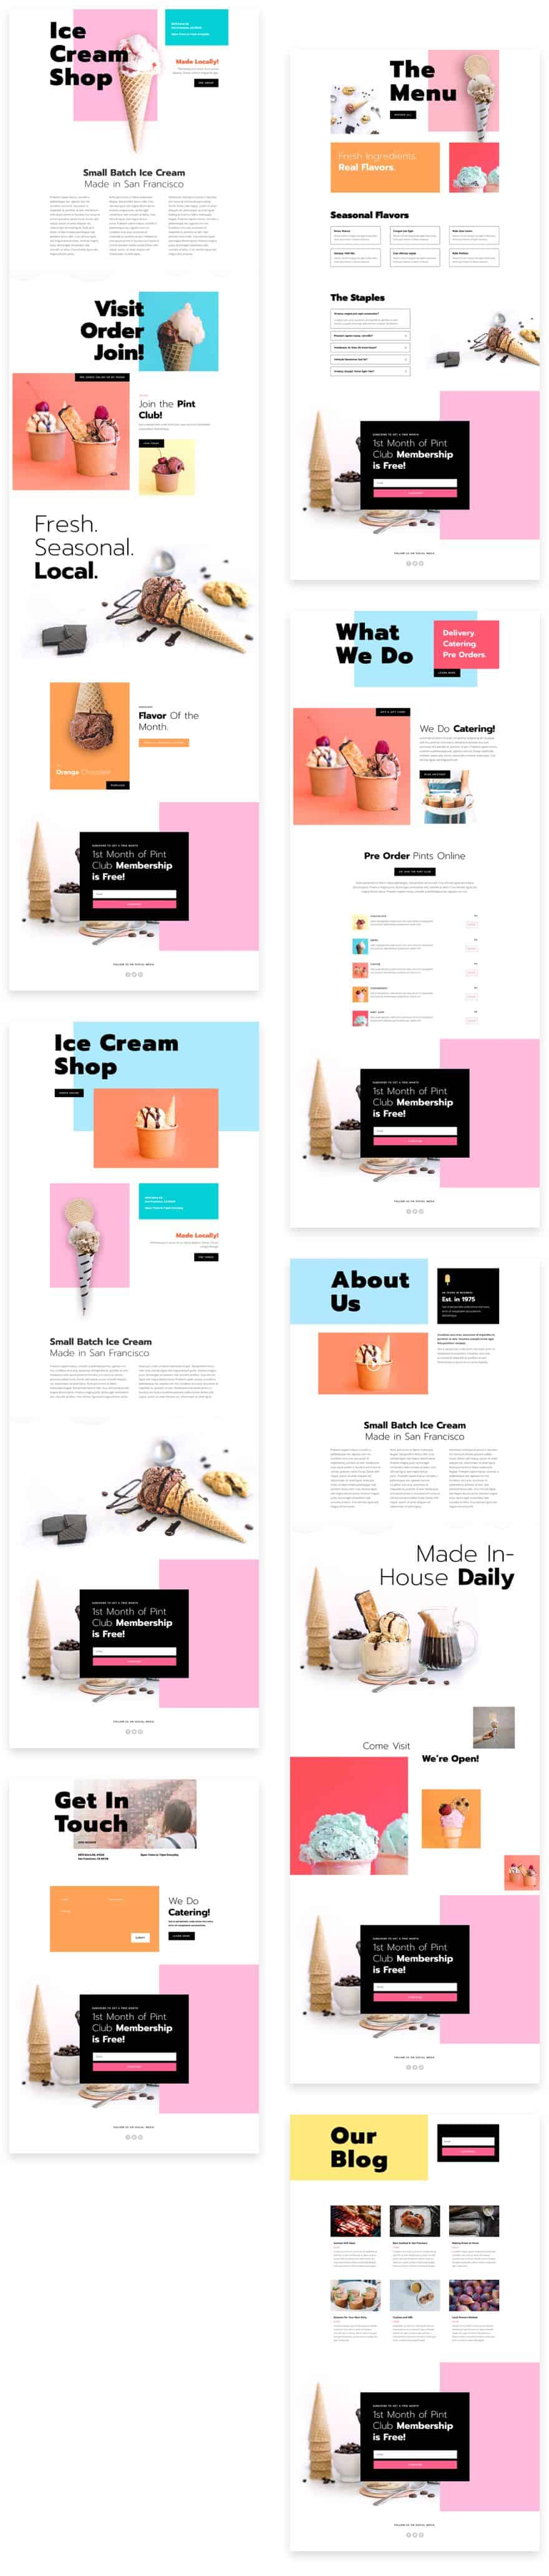 Ice Cream Shop Divi Layout Pack